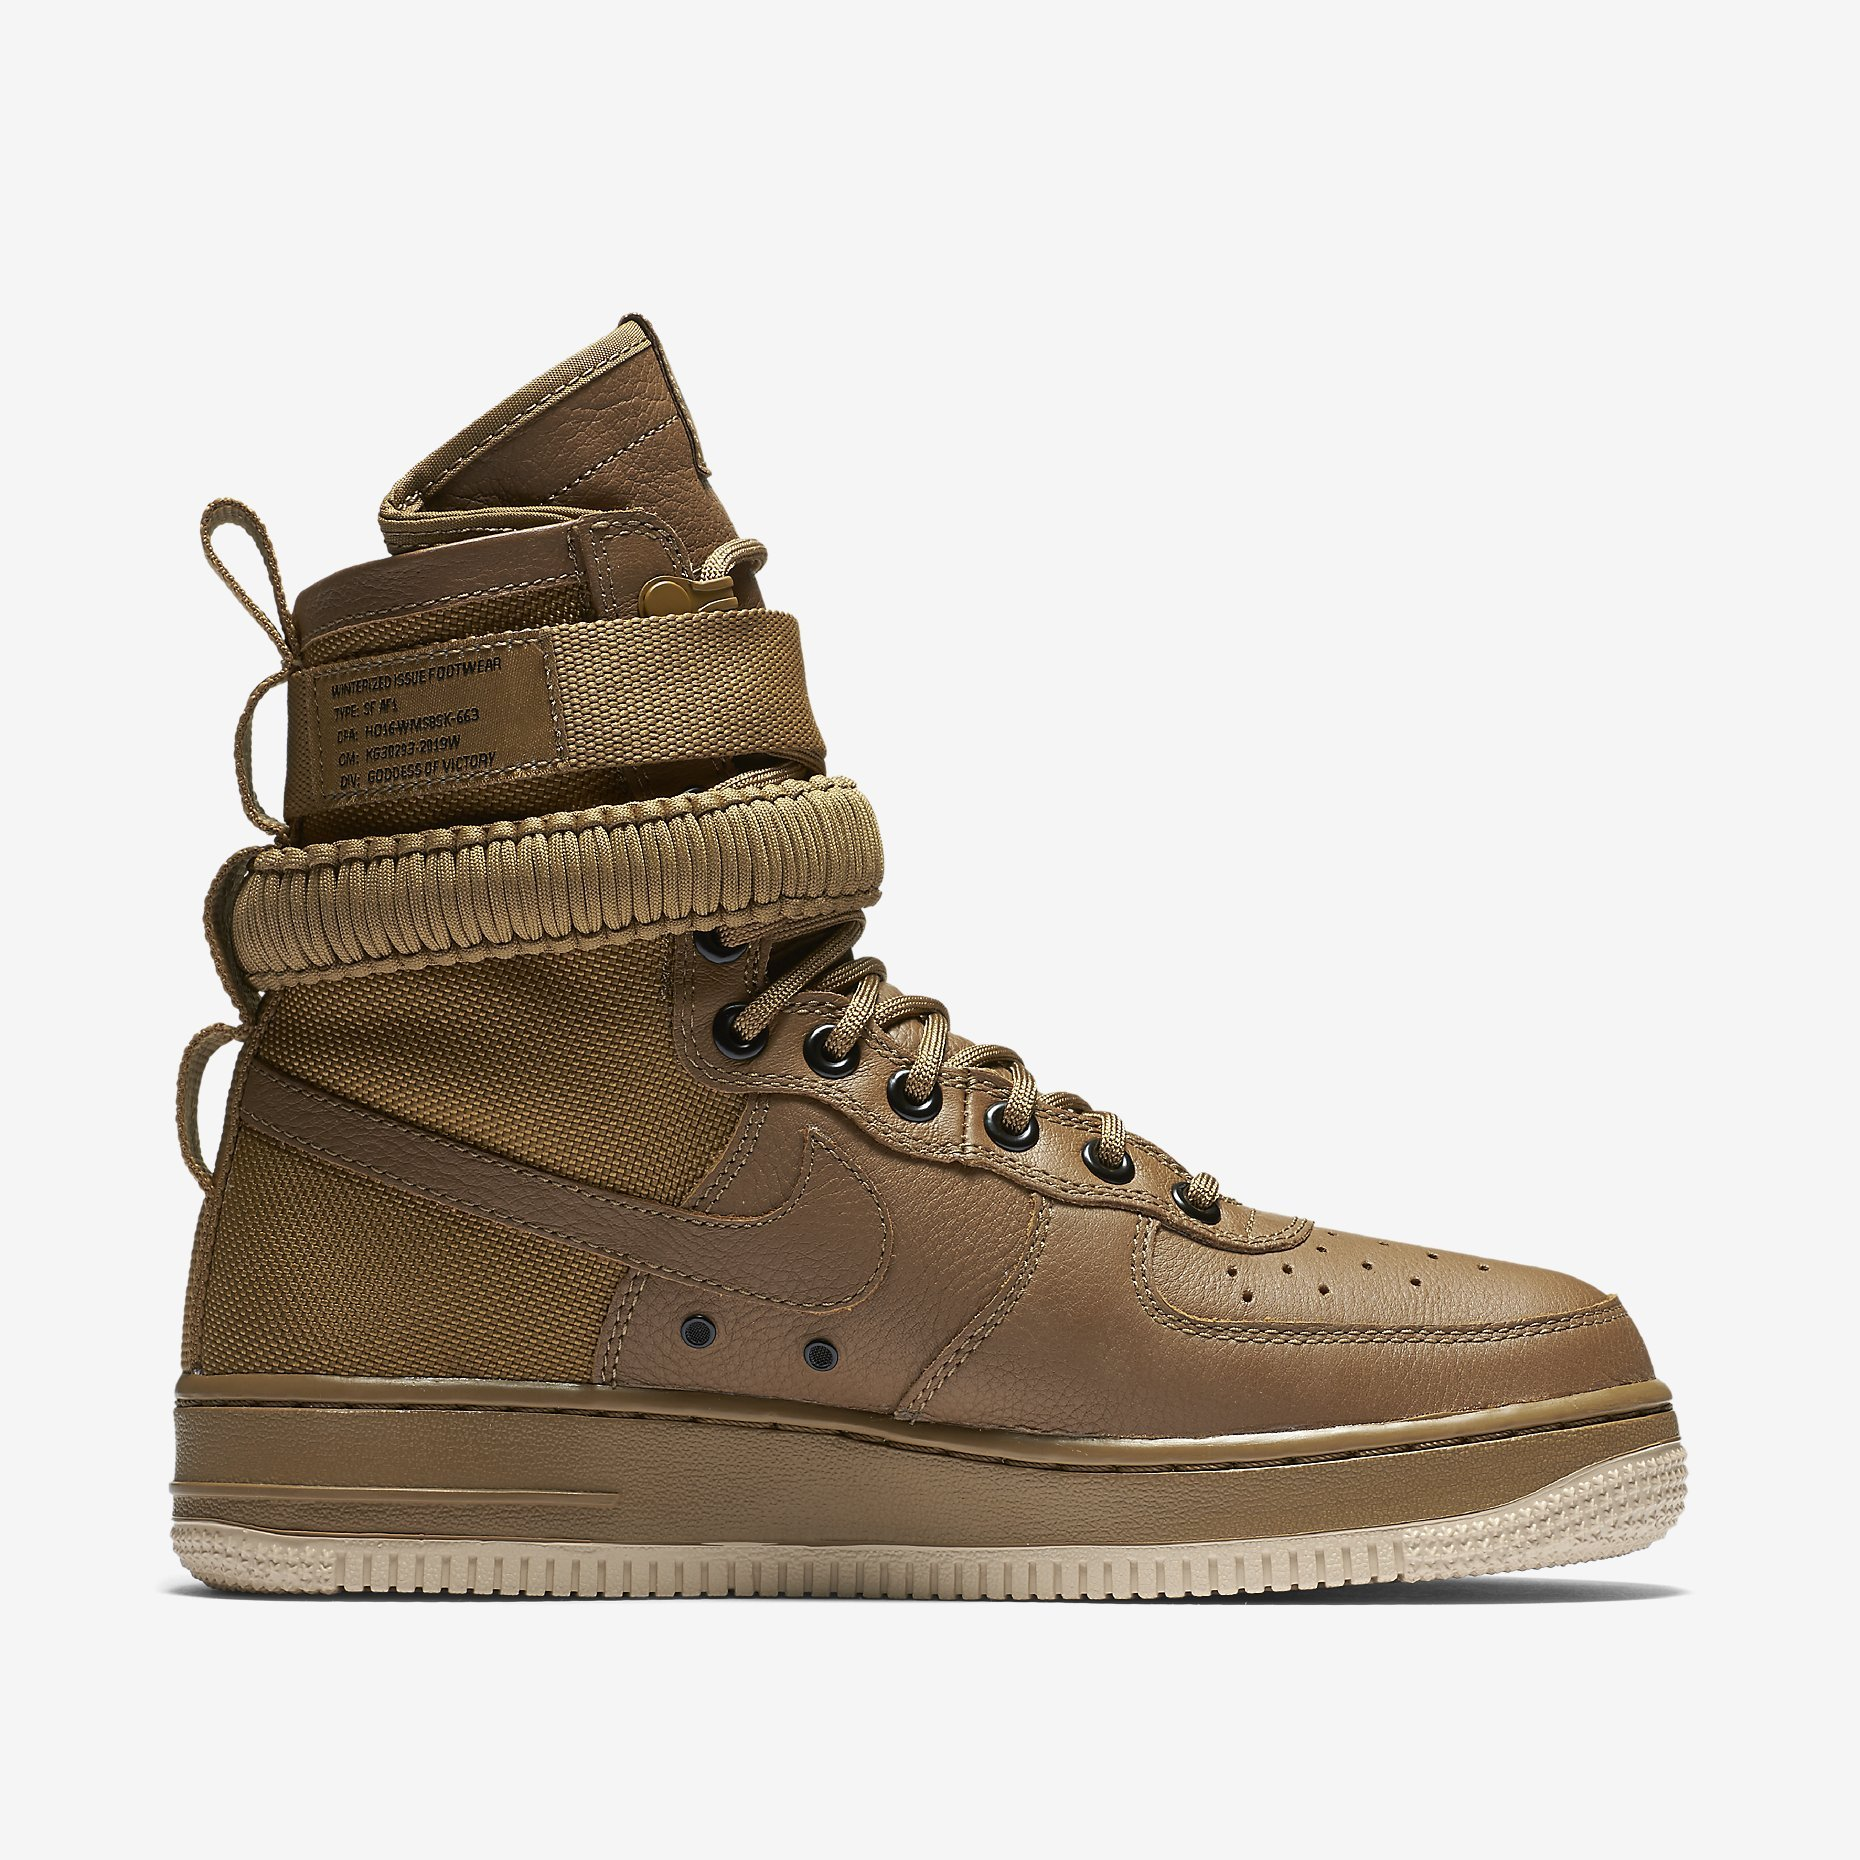 nike-special-field-air-force-1-release-20161112-36